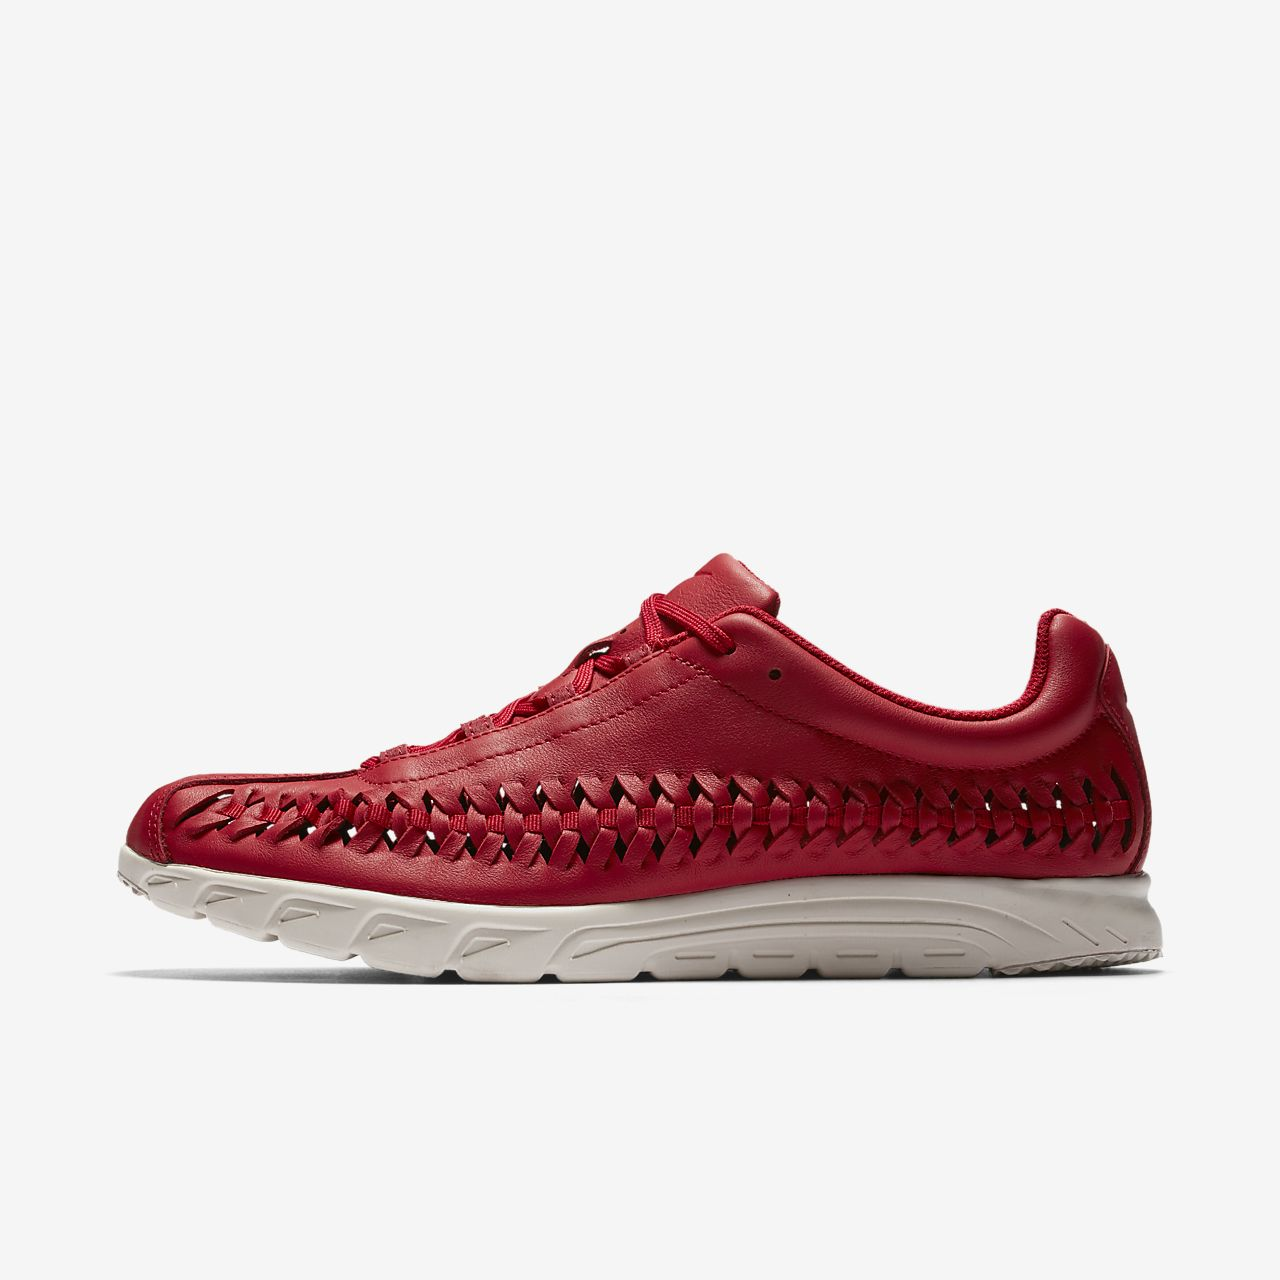 official photos aae13 2c665 Nike Mayfly Woven